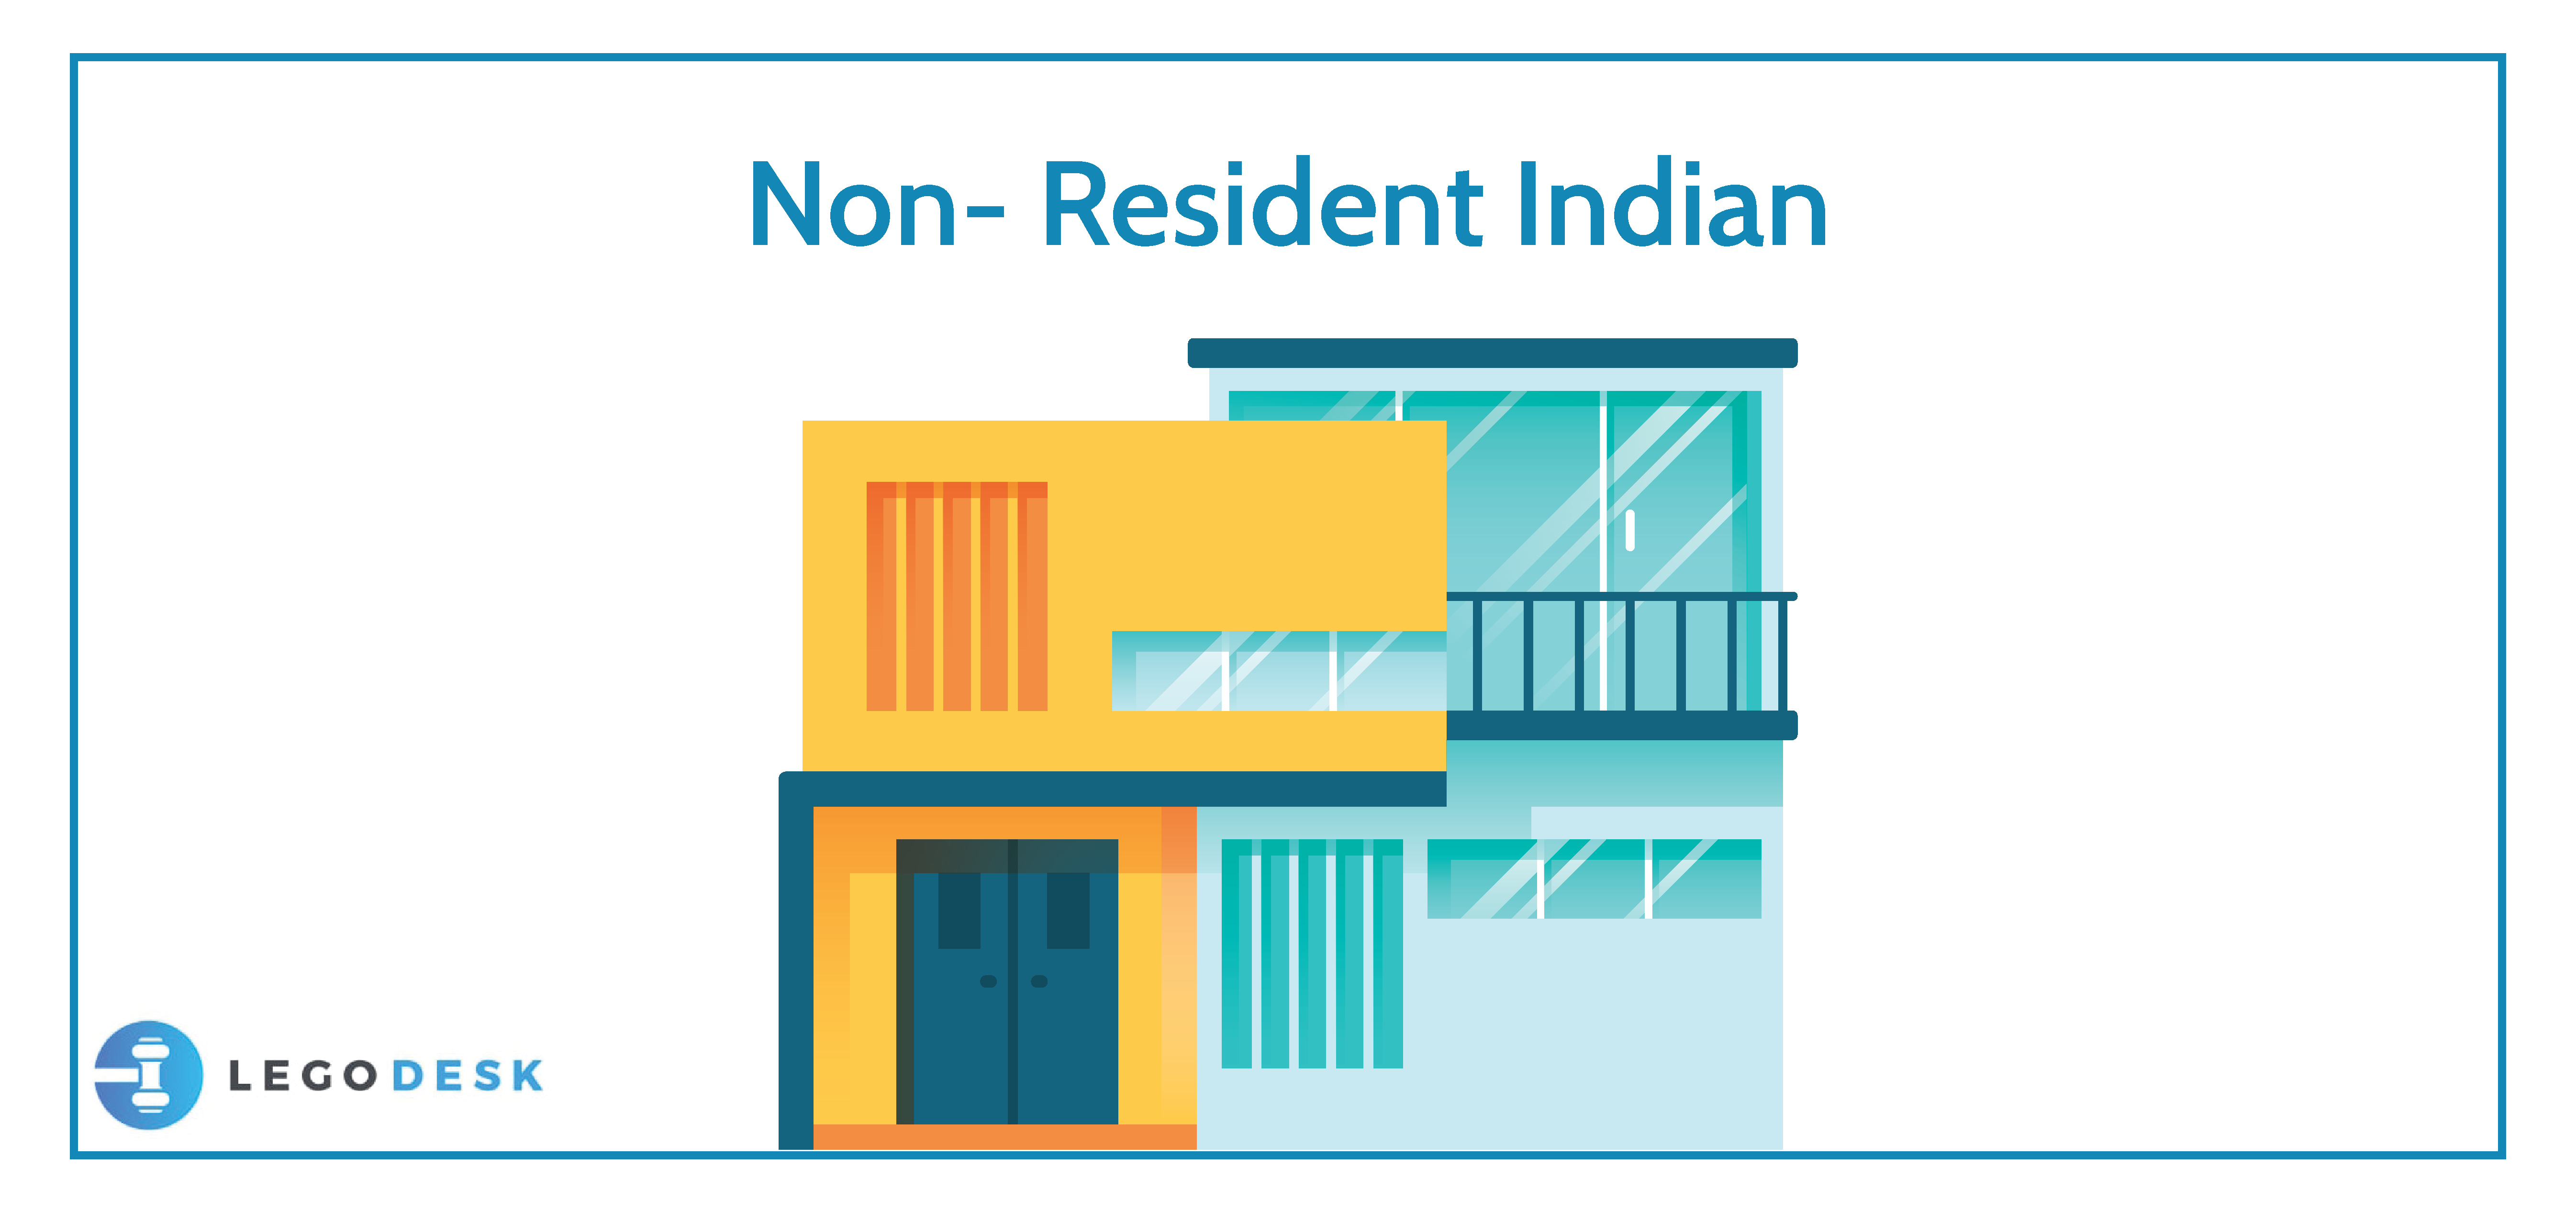 Non- Resident Indian